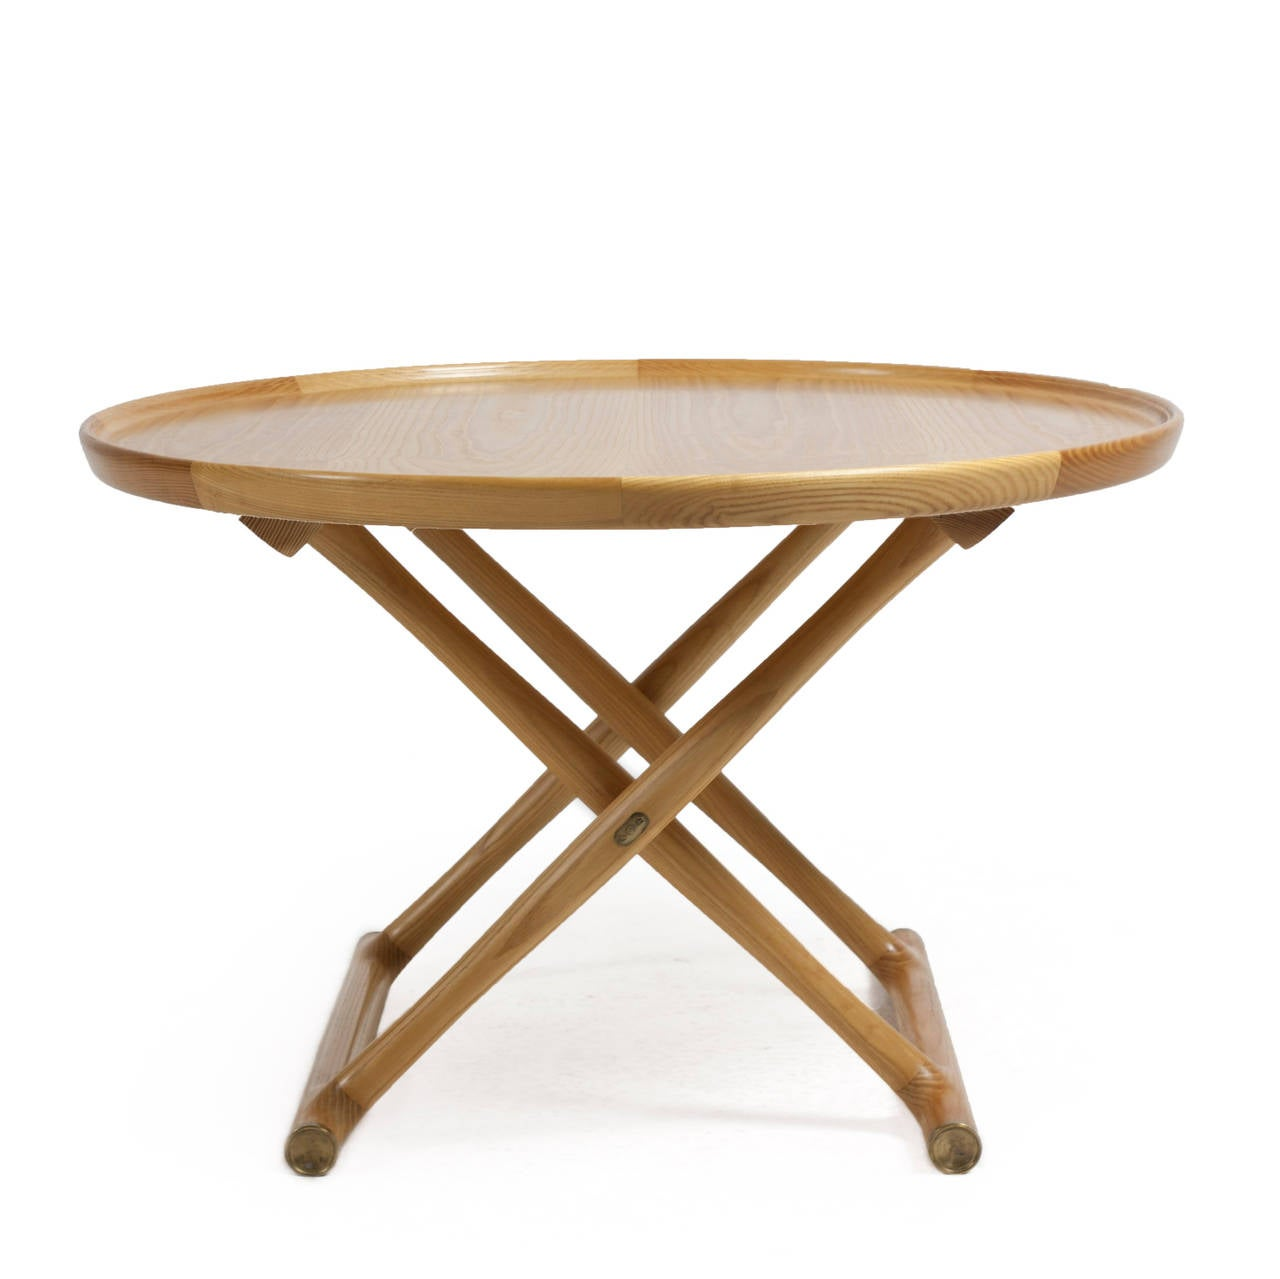 A rarely seen circular ash Egyptian table with brass fittings.   Designed by Mogens Lassen, 1940 and manufactured by cabinetmaker A. J. Iversen, Denmark.   Diameter:85 cm.  Very fine condition.